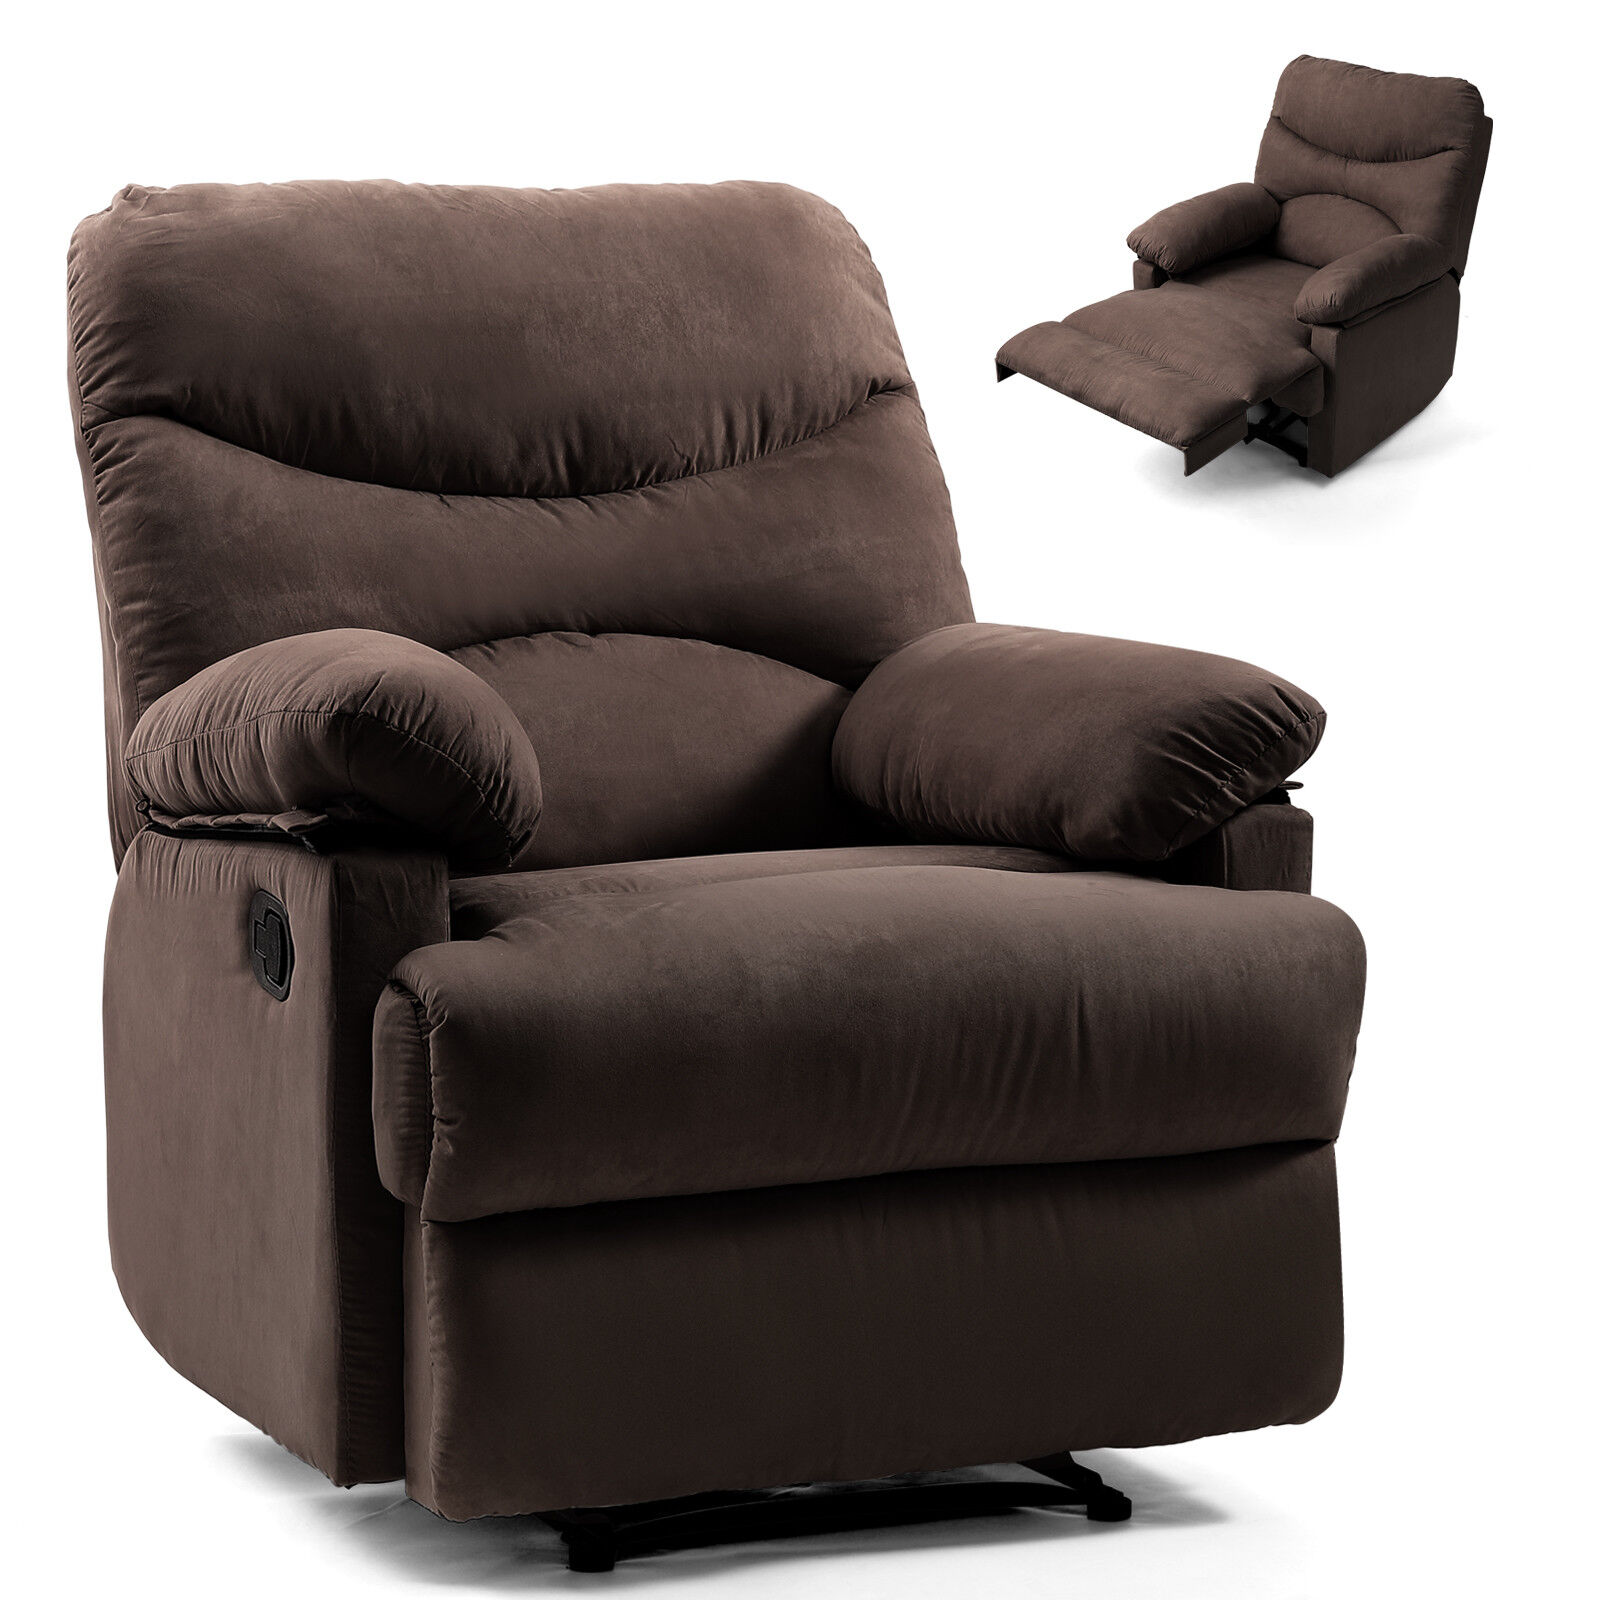 Chocolate Lazy Man Massage Recliner Chair Zero Gravity Full